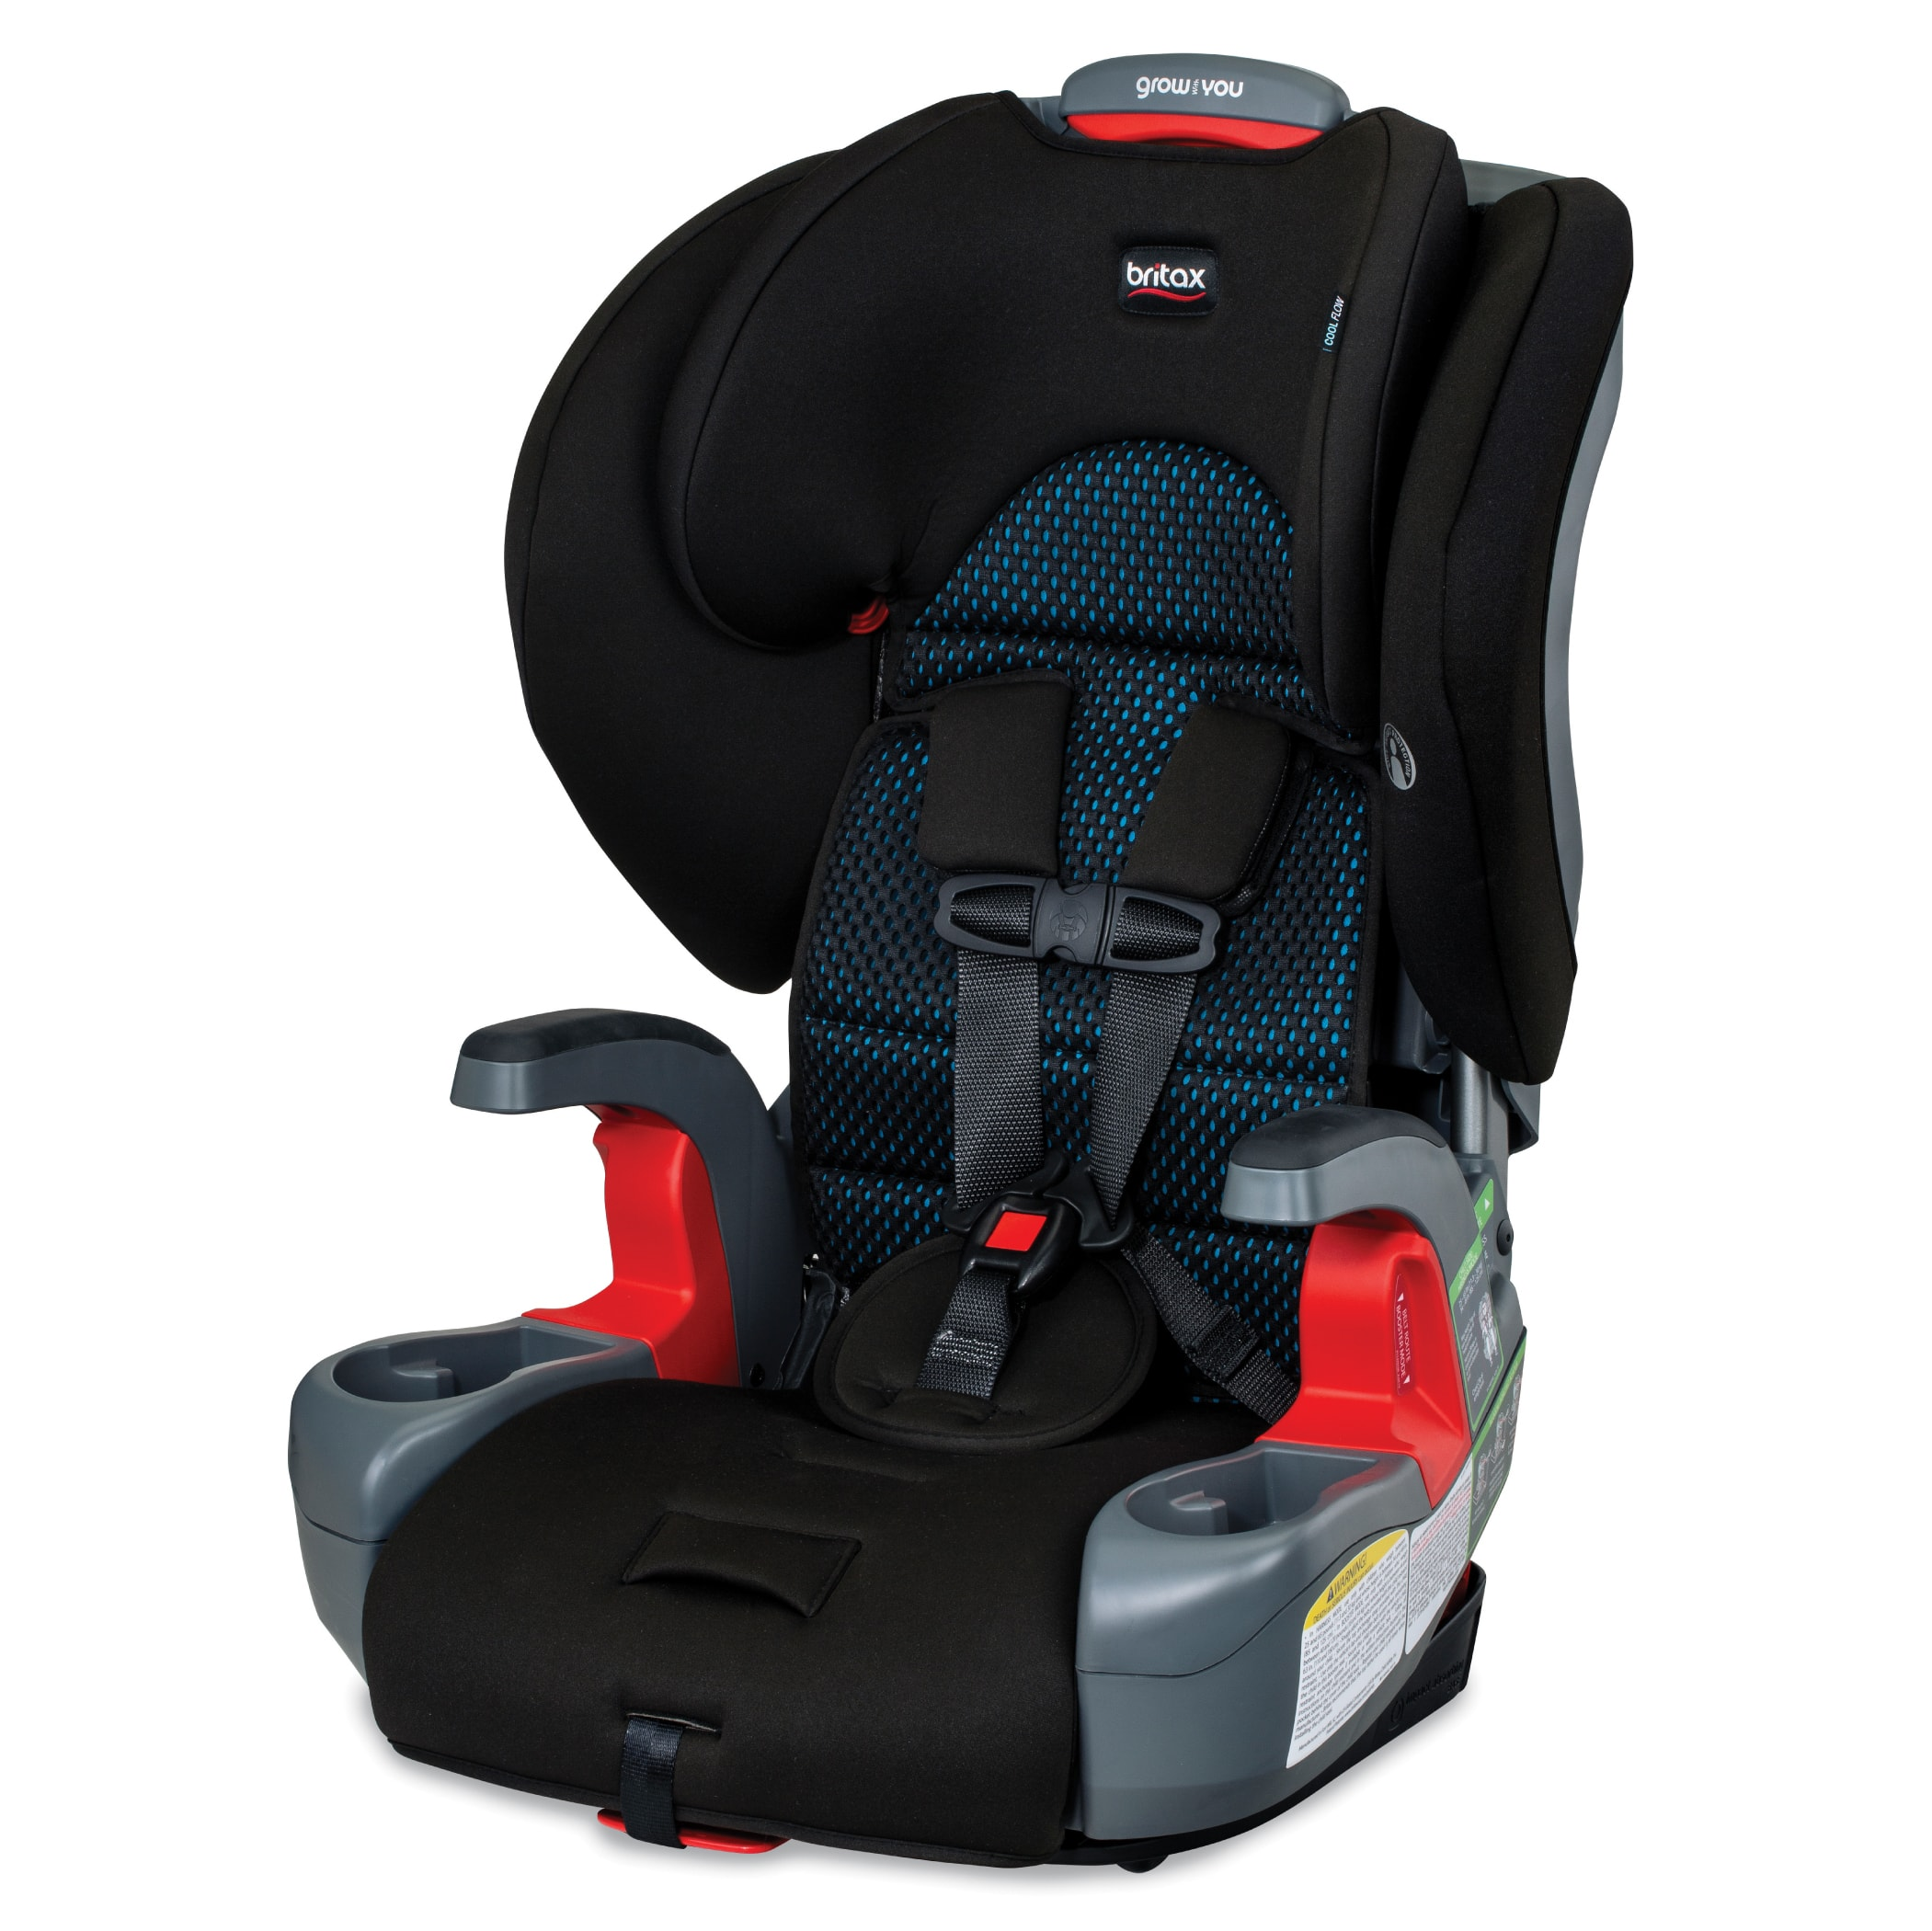 Walmart YMMV: Britax Grow With You Harness-2-Booster Car Seat, Cool Flow in Black and Teal $100